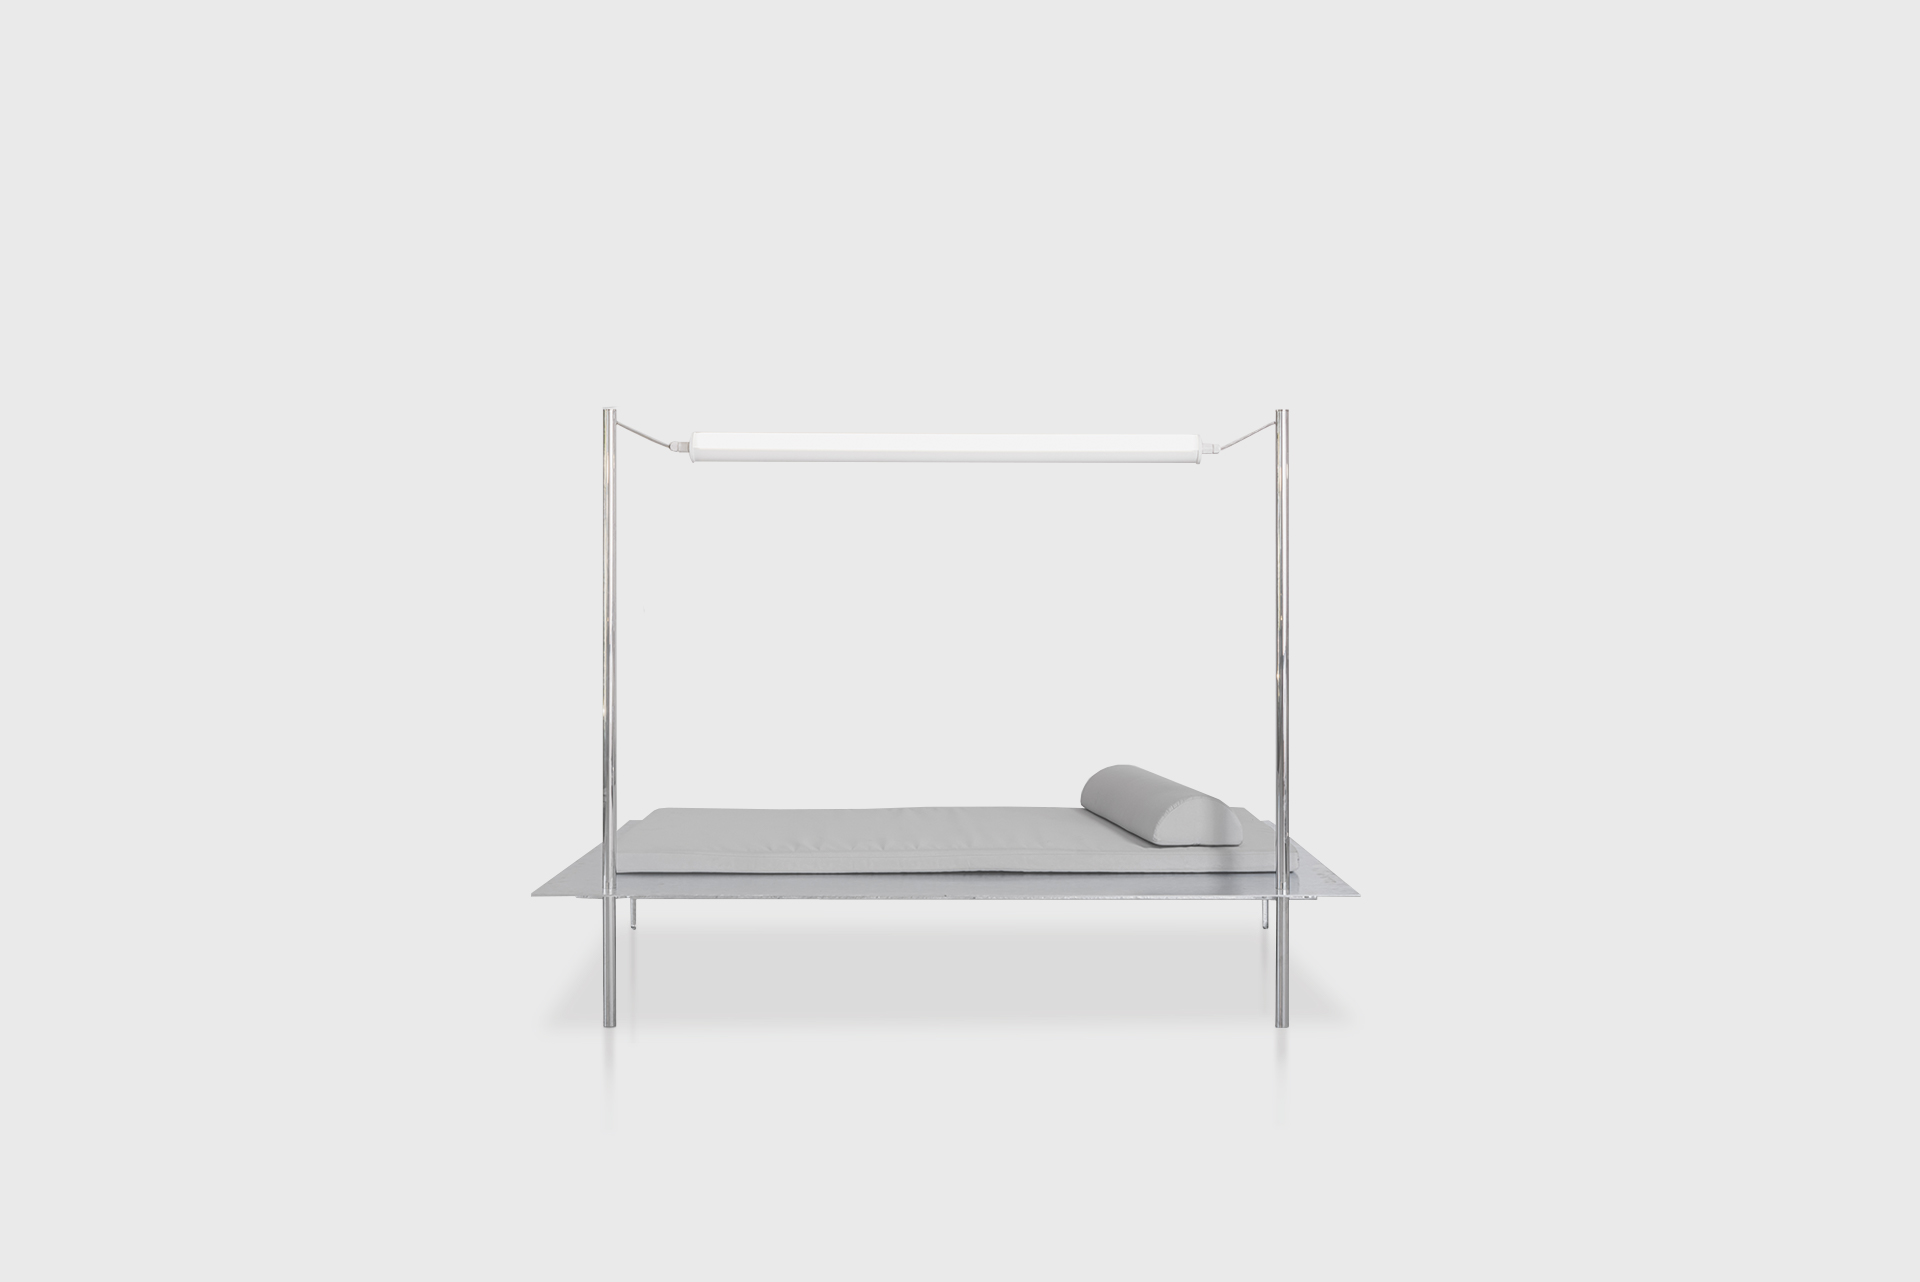 """Tube Light Daybed From the series """"Beasts"""" Produced in exclusive for SIDE GALLERY Manufactured by ERTL und ZULL Berlin, 2021 High polished steel, galvanized steel, upholstery"""